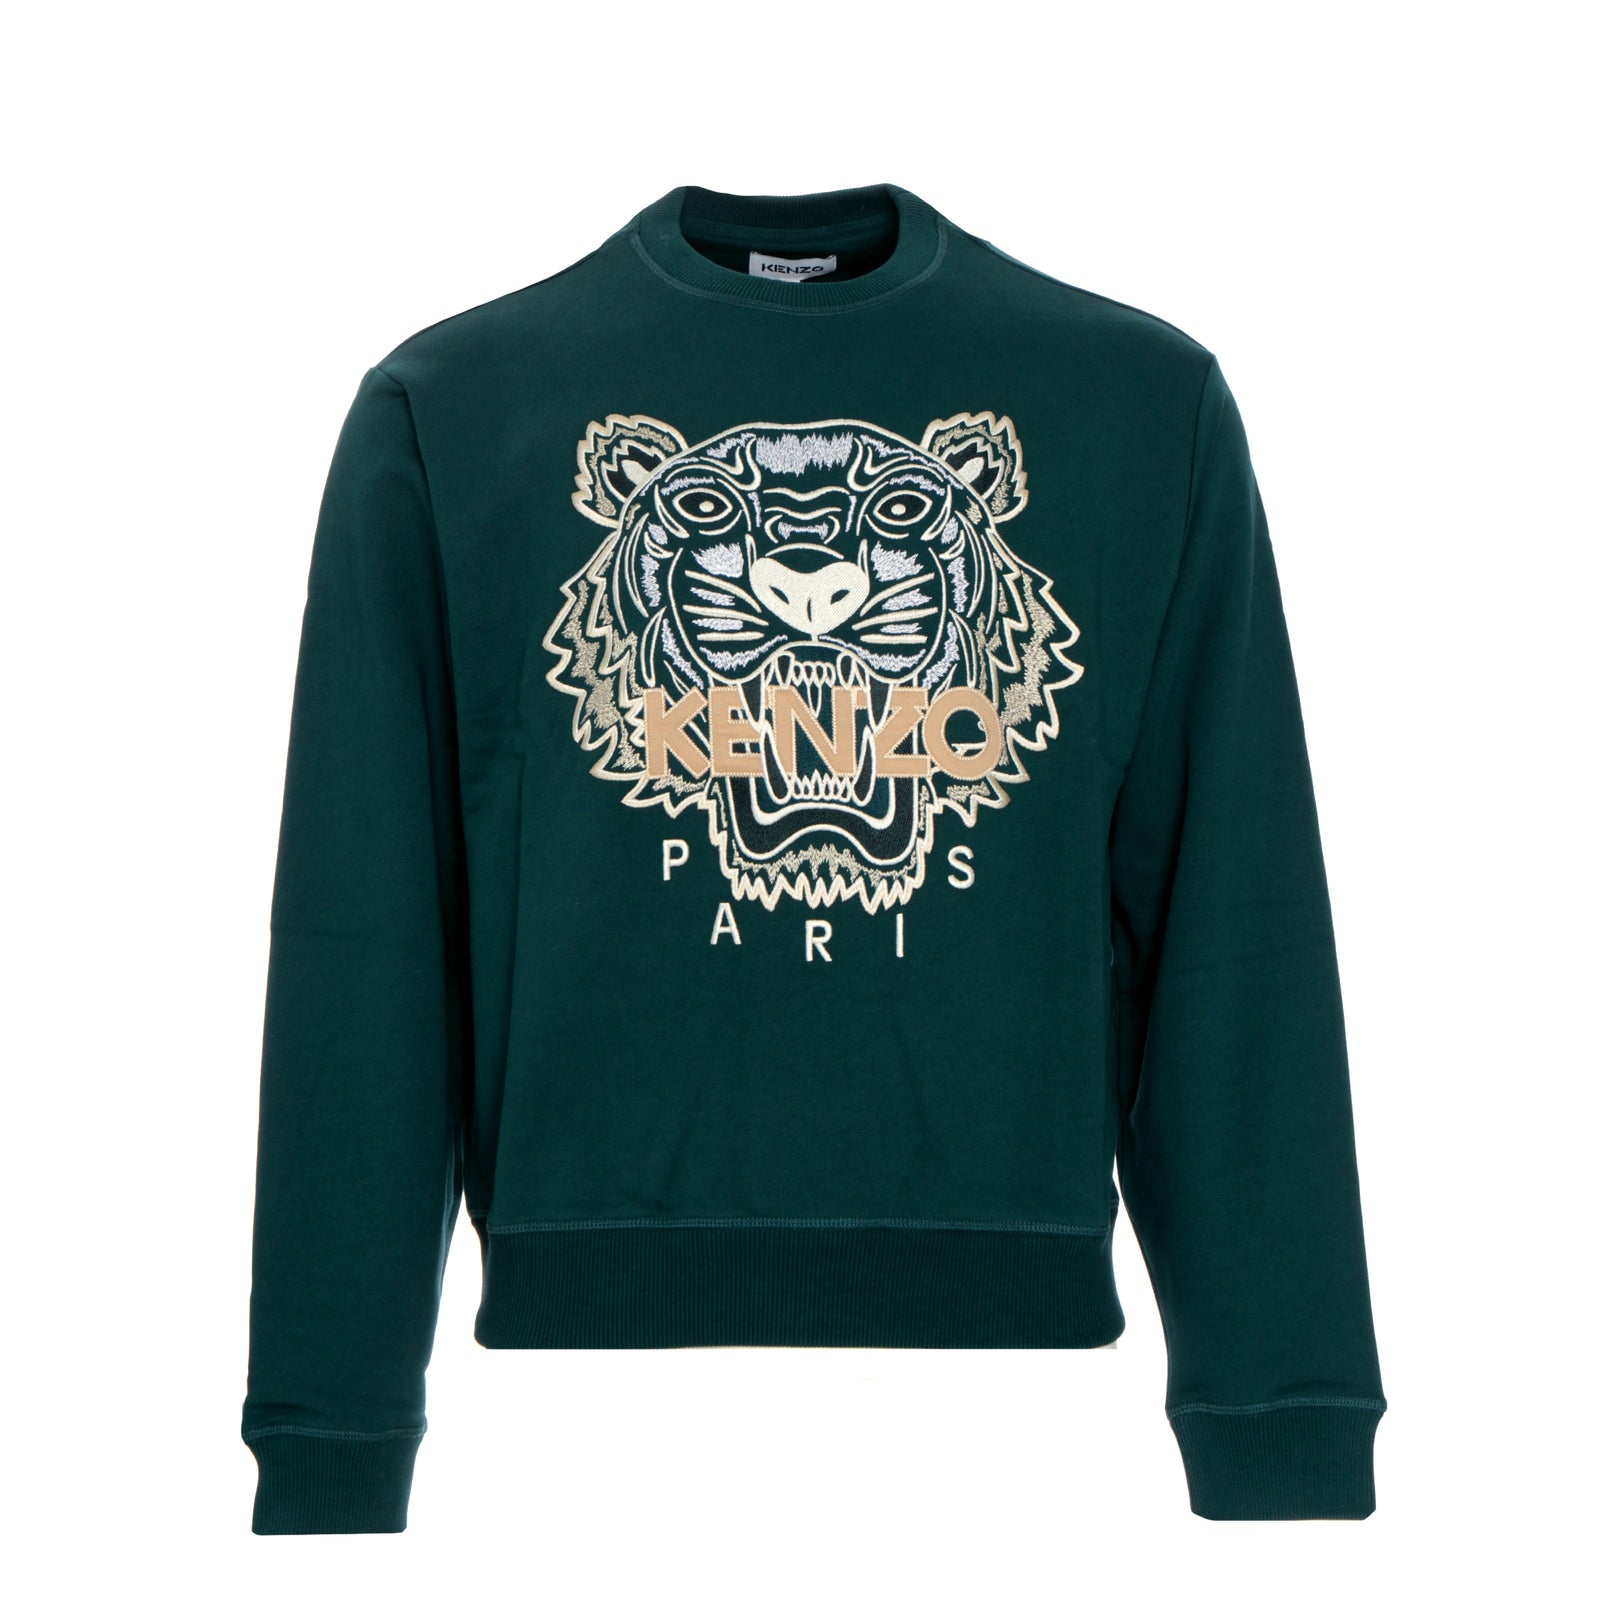 Kenzo Paris FW20 Classic Tiger Crewneck Men's Pullover Sweater  Green